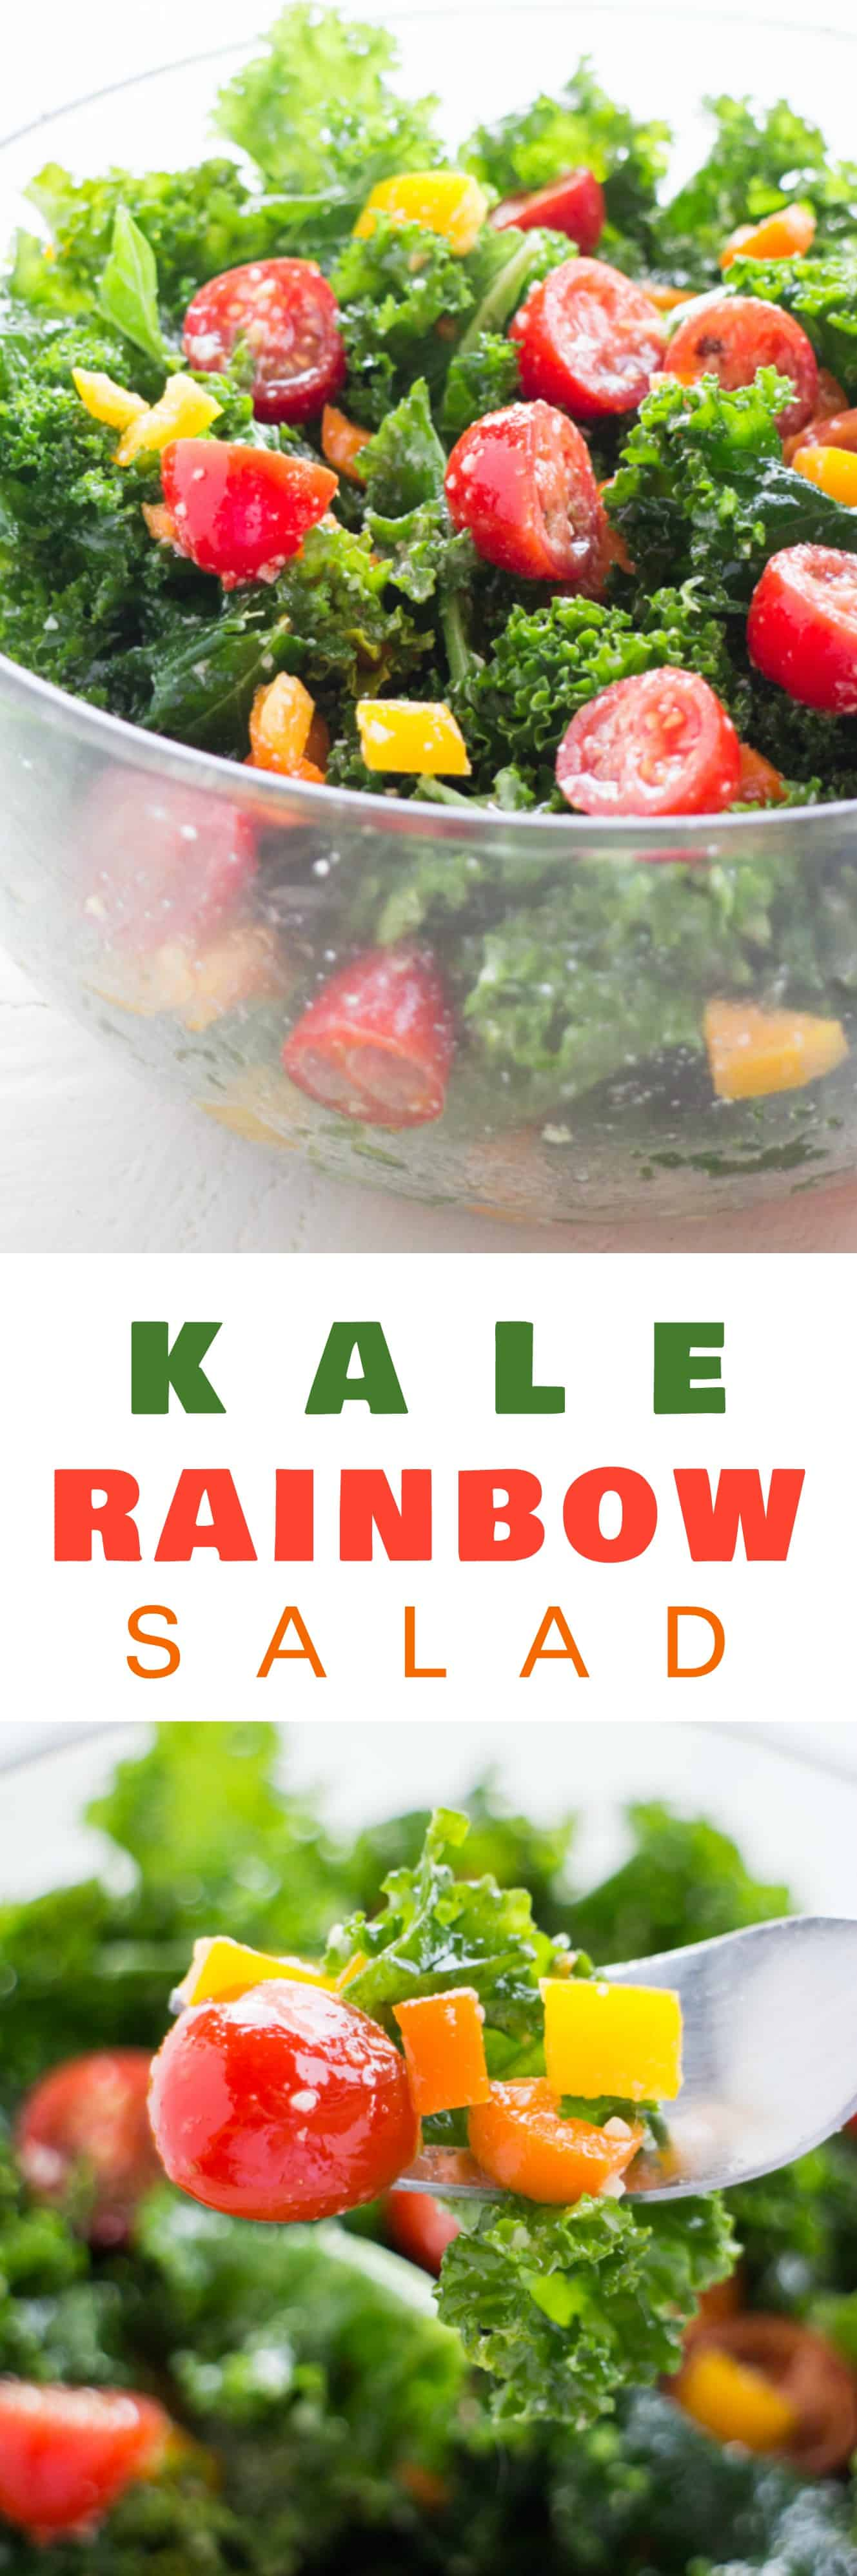 Kale CHERRY TOMATO Rainbow Salad with olive oil and lemon dressing is the perfect healthy salad recipe!  This easy salad includes massaged kale, grape tomatoes and colorful peppers to give it a pretty rainbow look!  My family loves this salad for dinner in Summer and Winter, and it's great for a crowd!